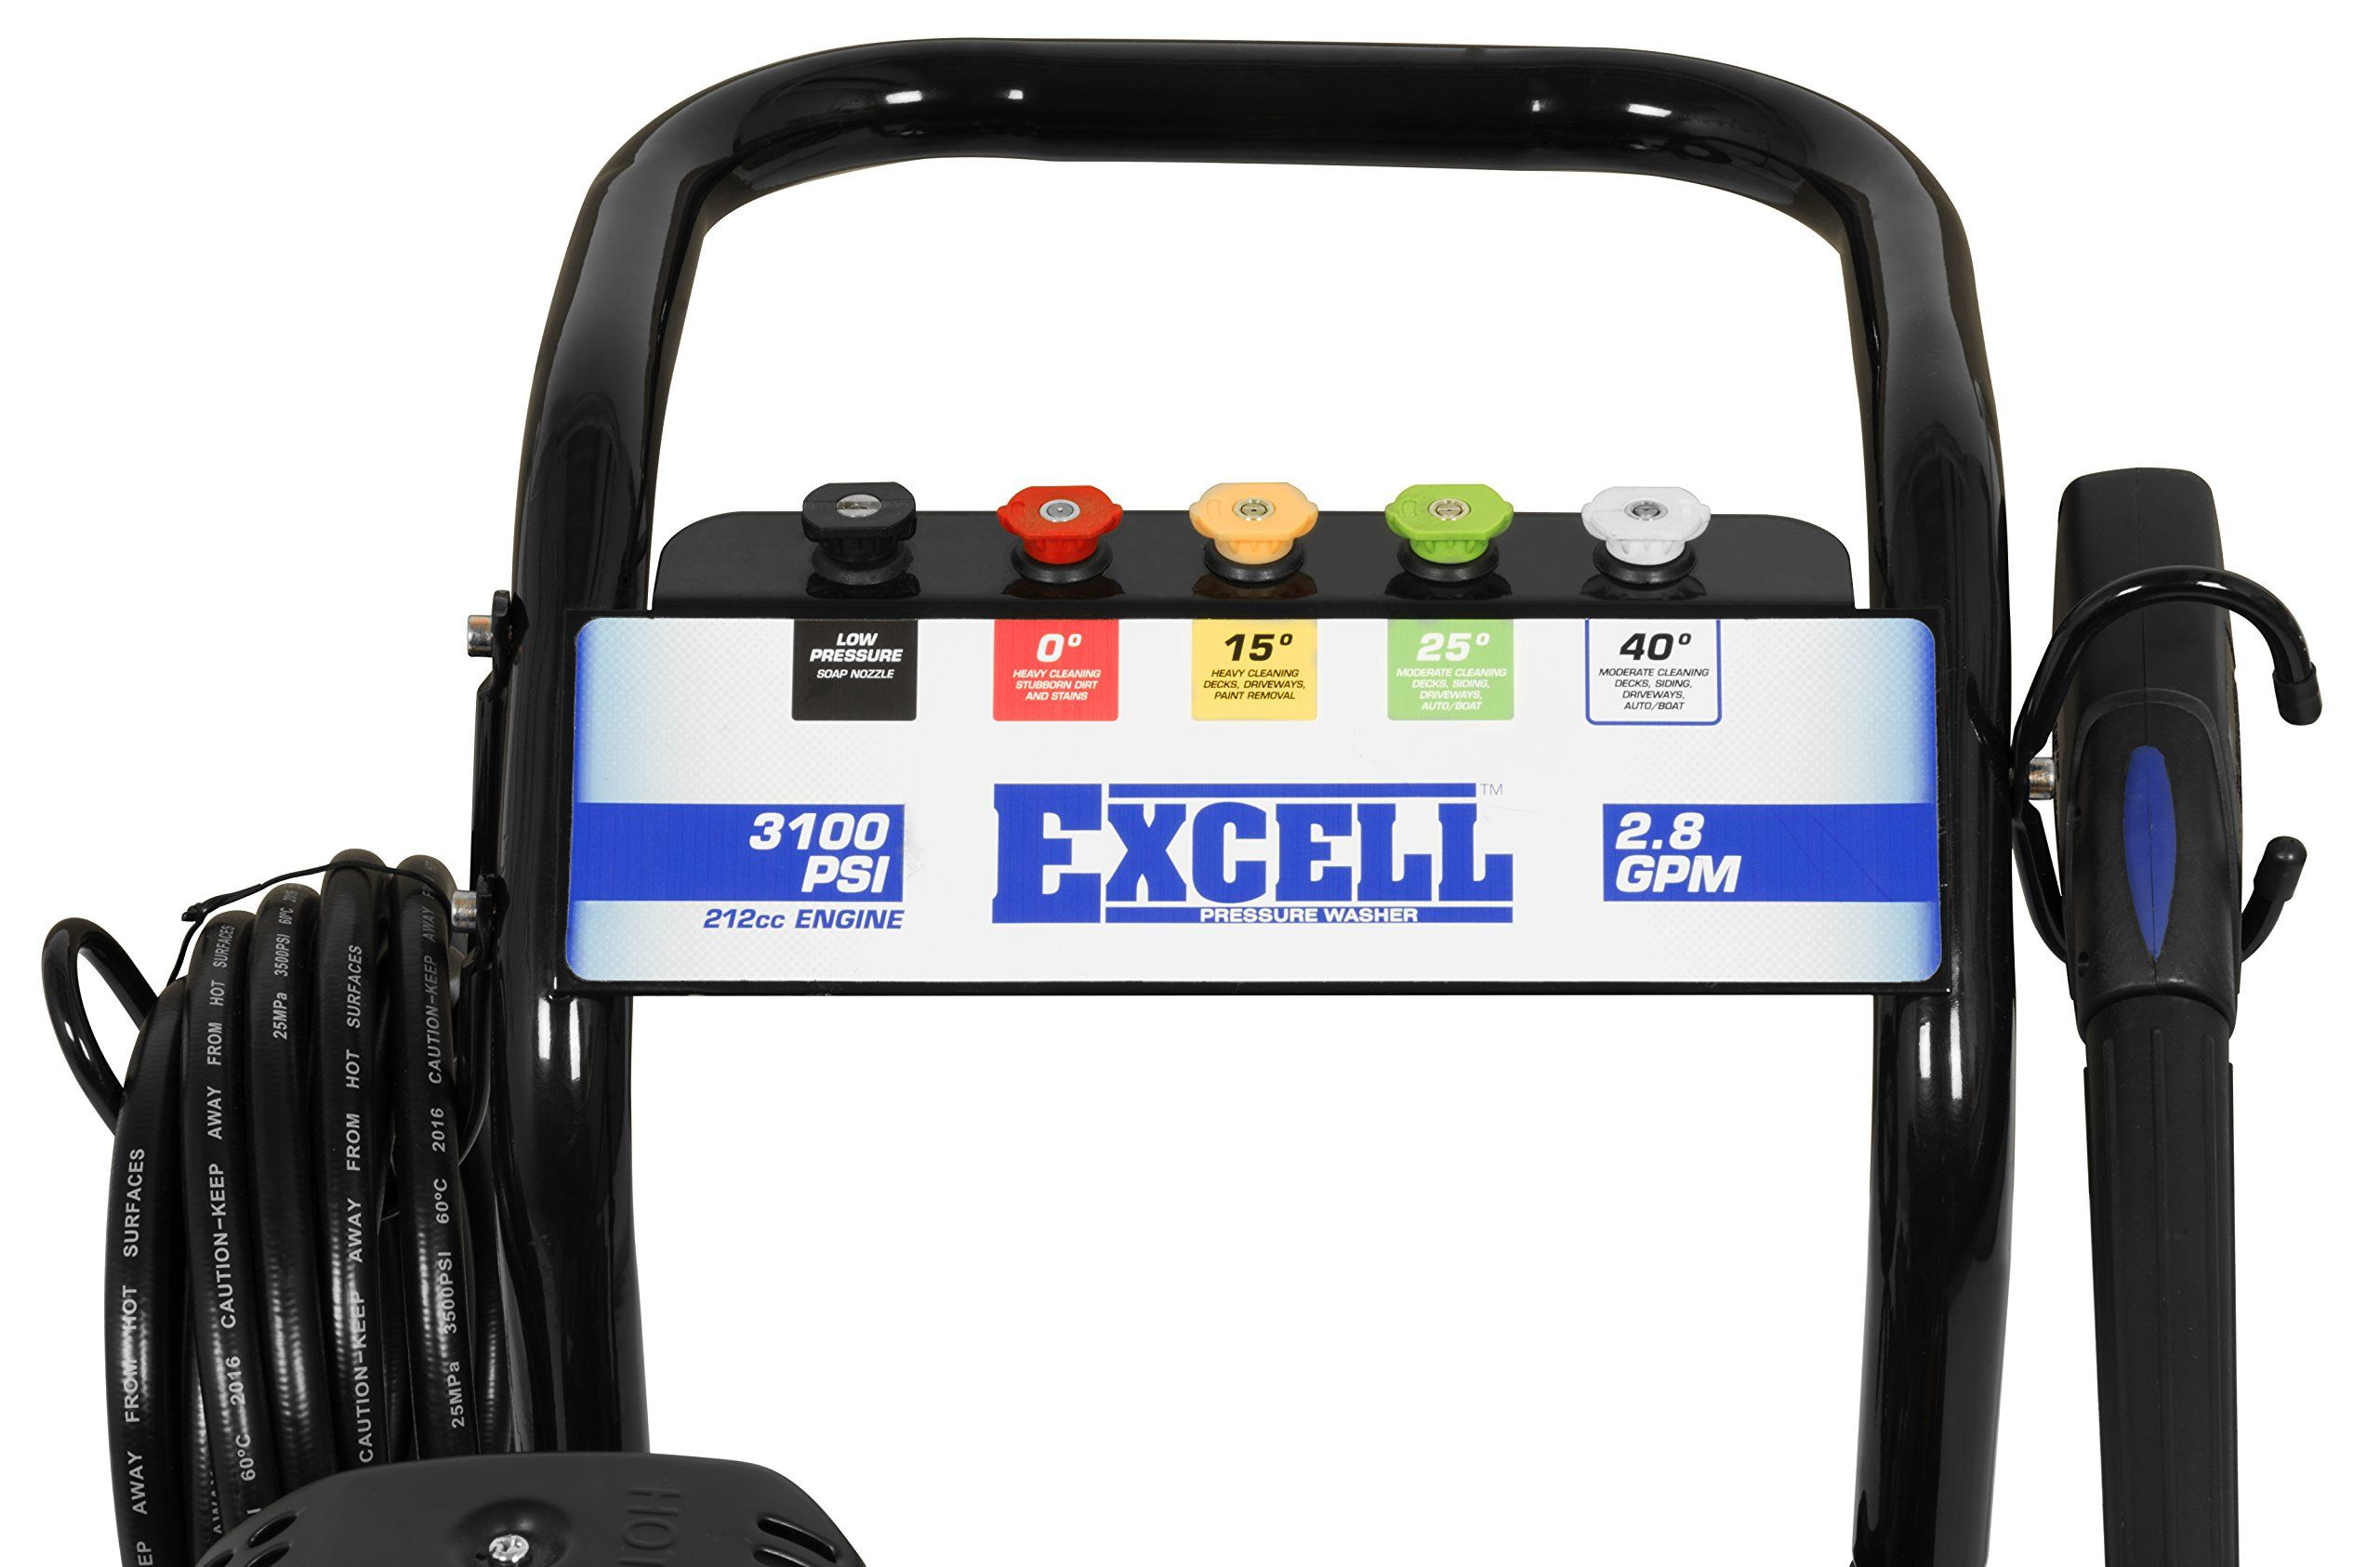 excell EPW2123100 3100 PSI 2 8 GPM Cold Water 212CC Gas